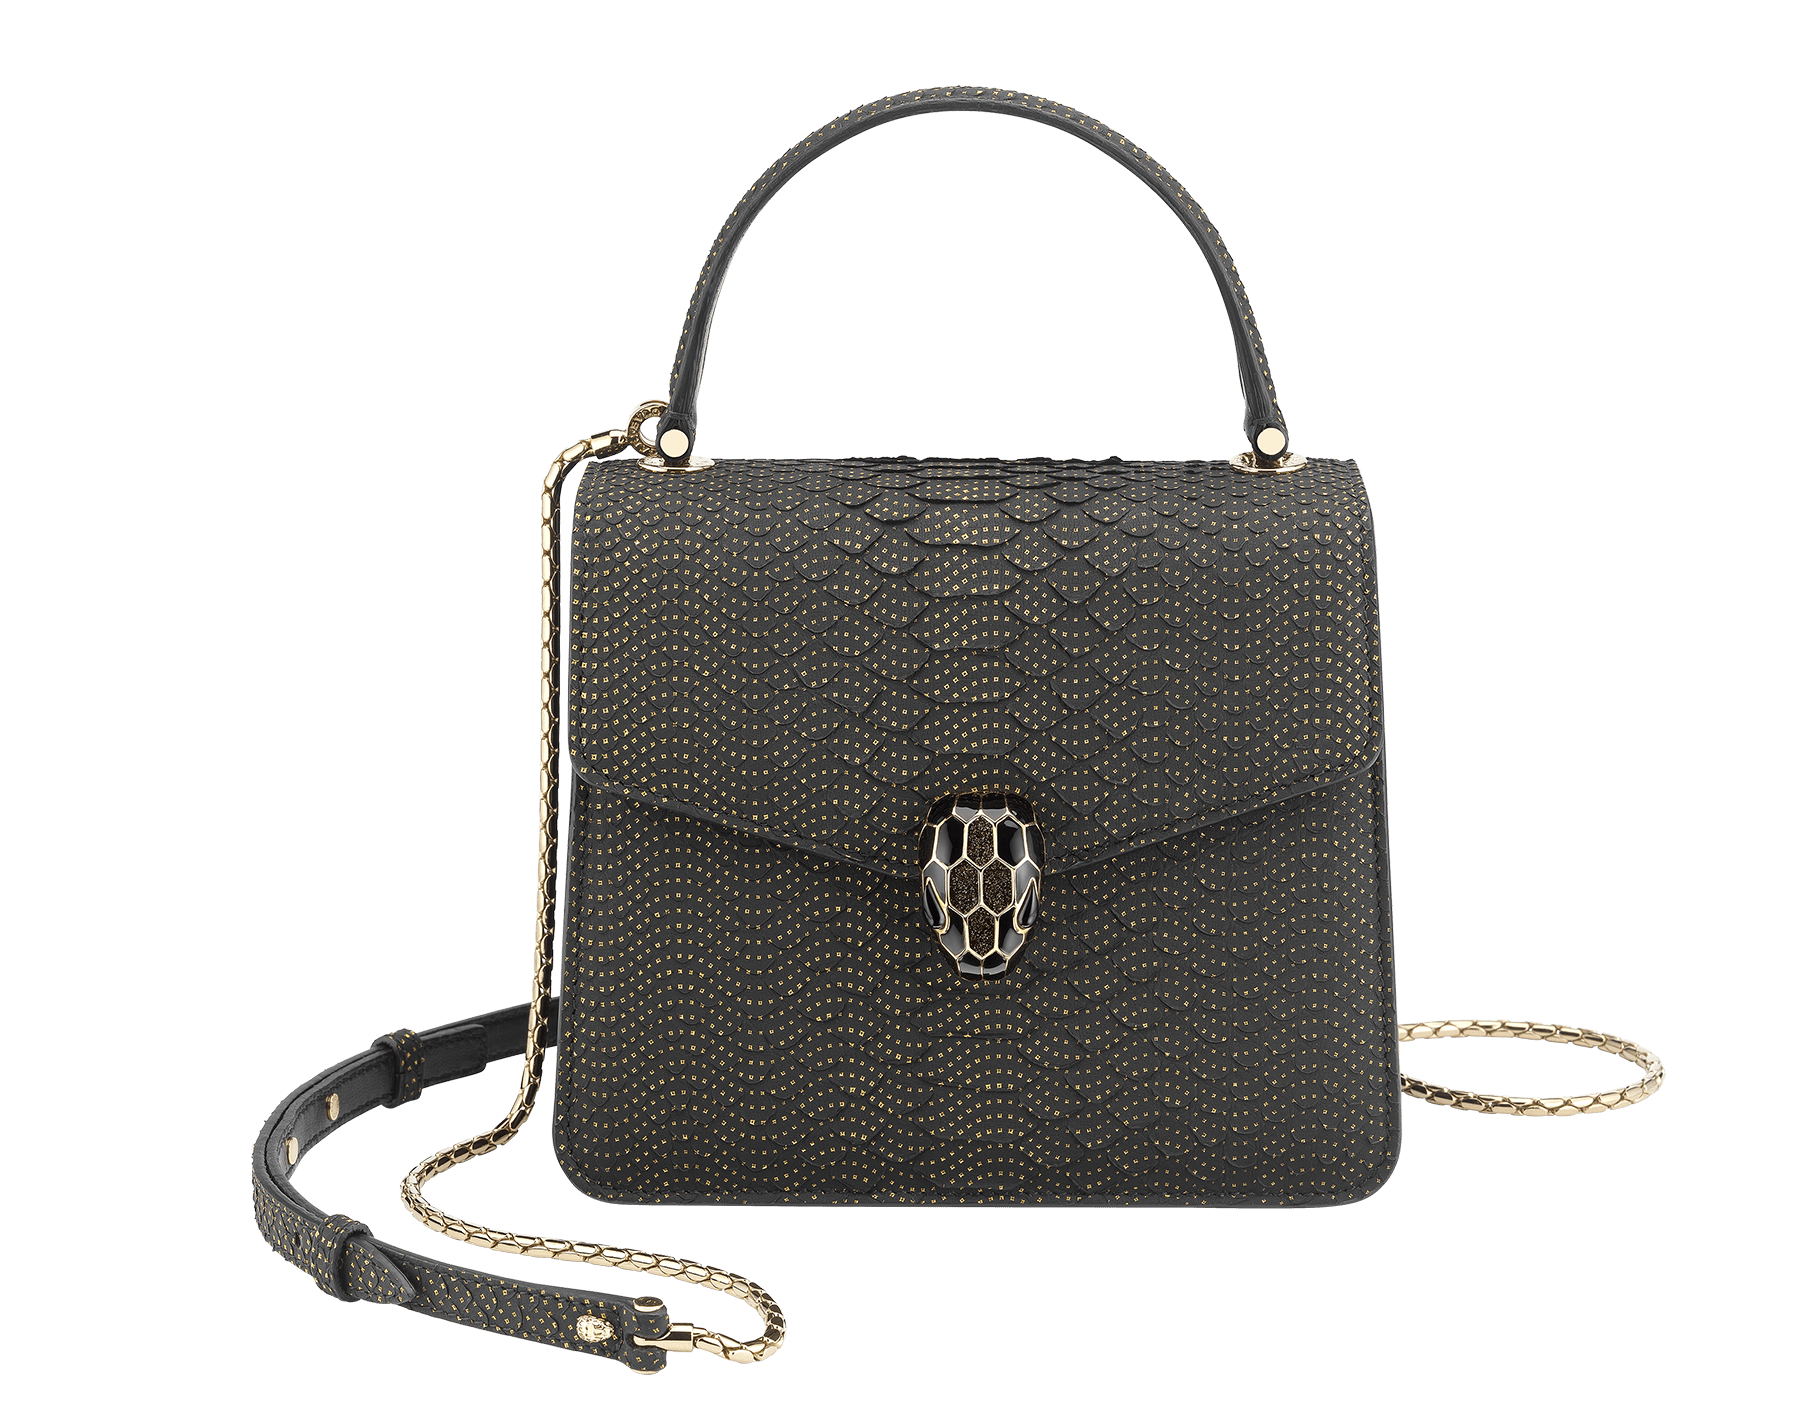 """Serpenti Forever"" crossbody bag in black Fil Coupé python skin. Iconic snakehead closure in light rose gold plated brass enriched with glitter bronze and shiny black enamel and black onyx eyes 287321 image 1"